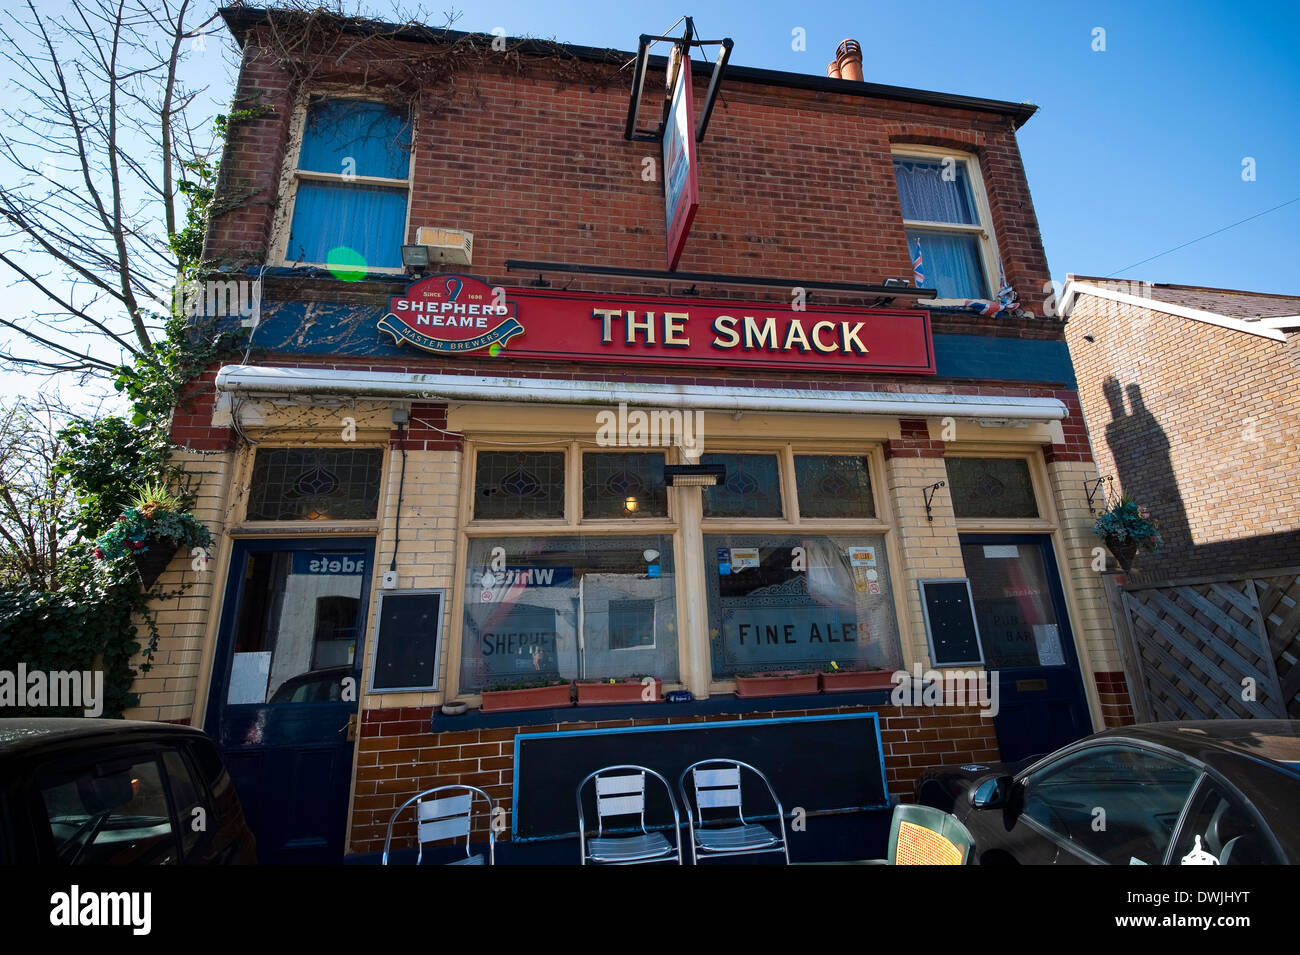 The Smack public house in Whitstable, Kent, UK - Stock Image